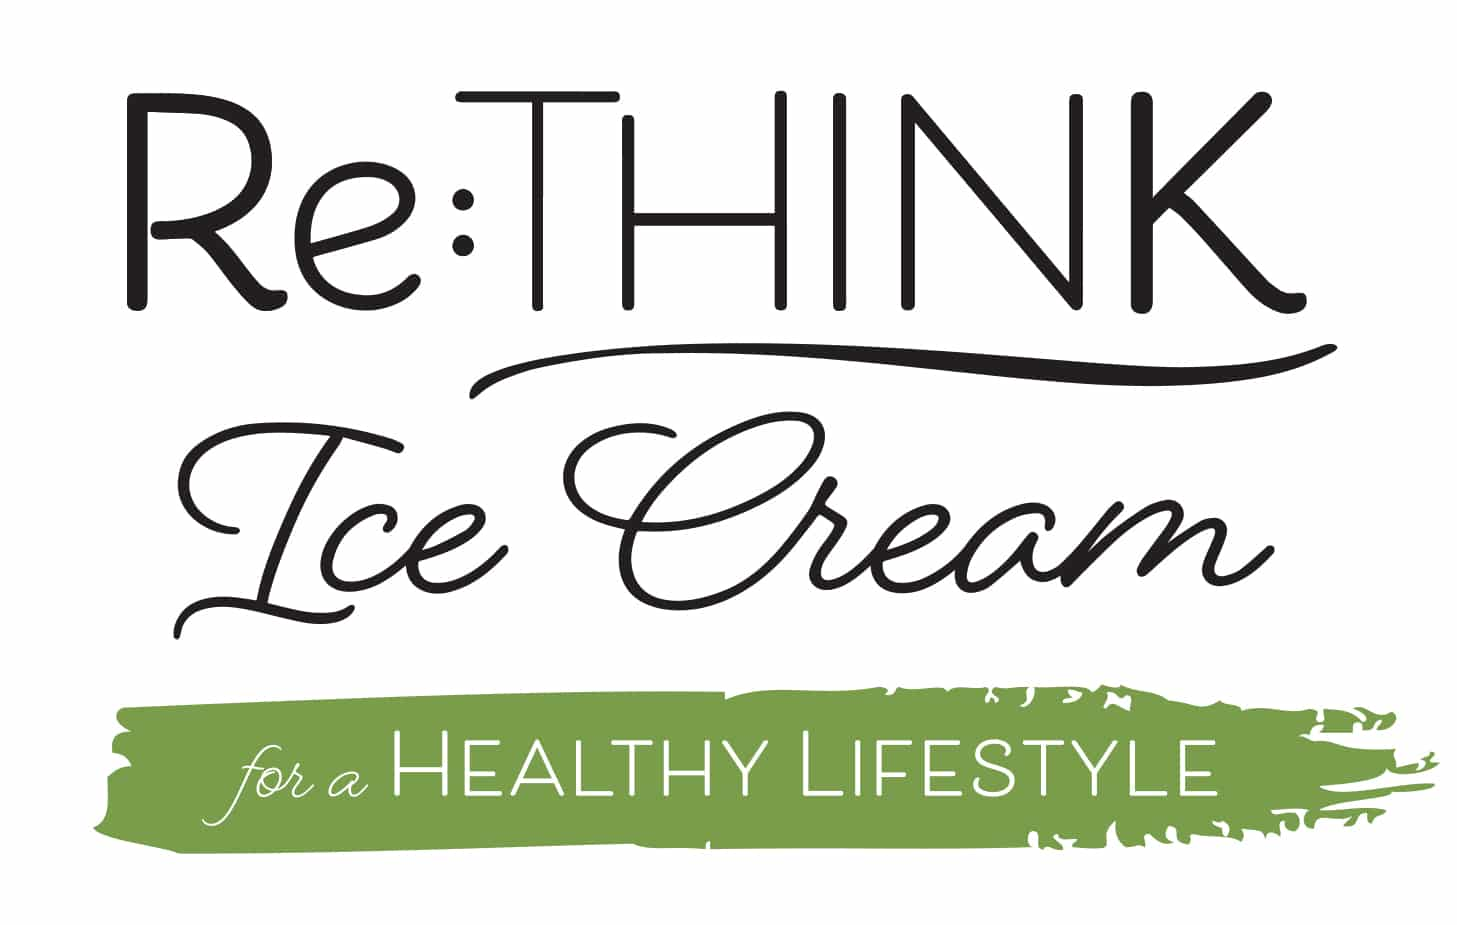 Re:THINK Ice Cream Debuts Lactose-Free Ice Cream Made With a2/a2 Dairy & Collagen